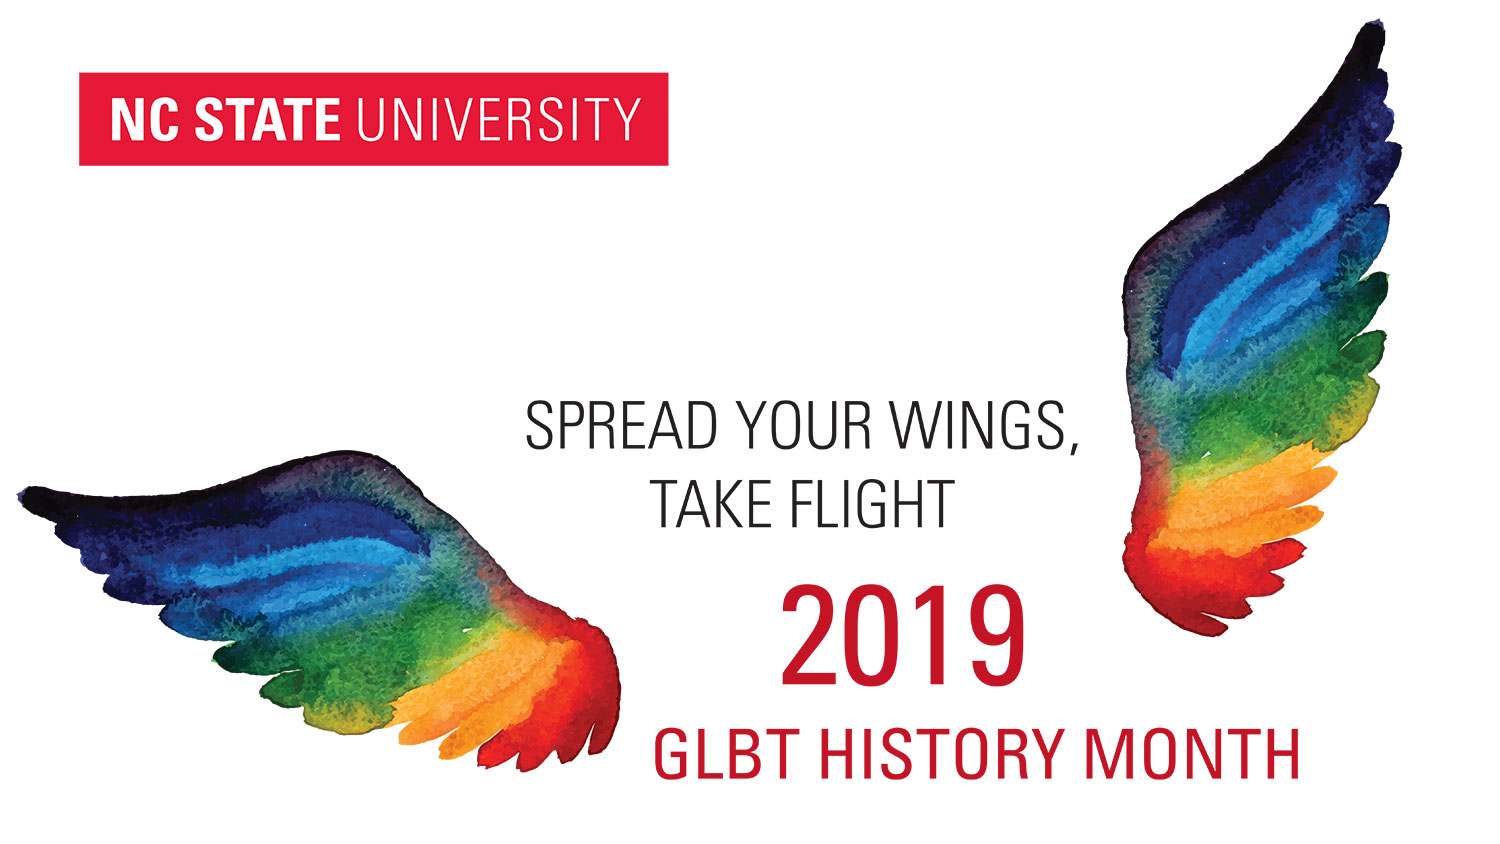 GLBT History Month 2019 illustration of rainbow wings taking flight